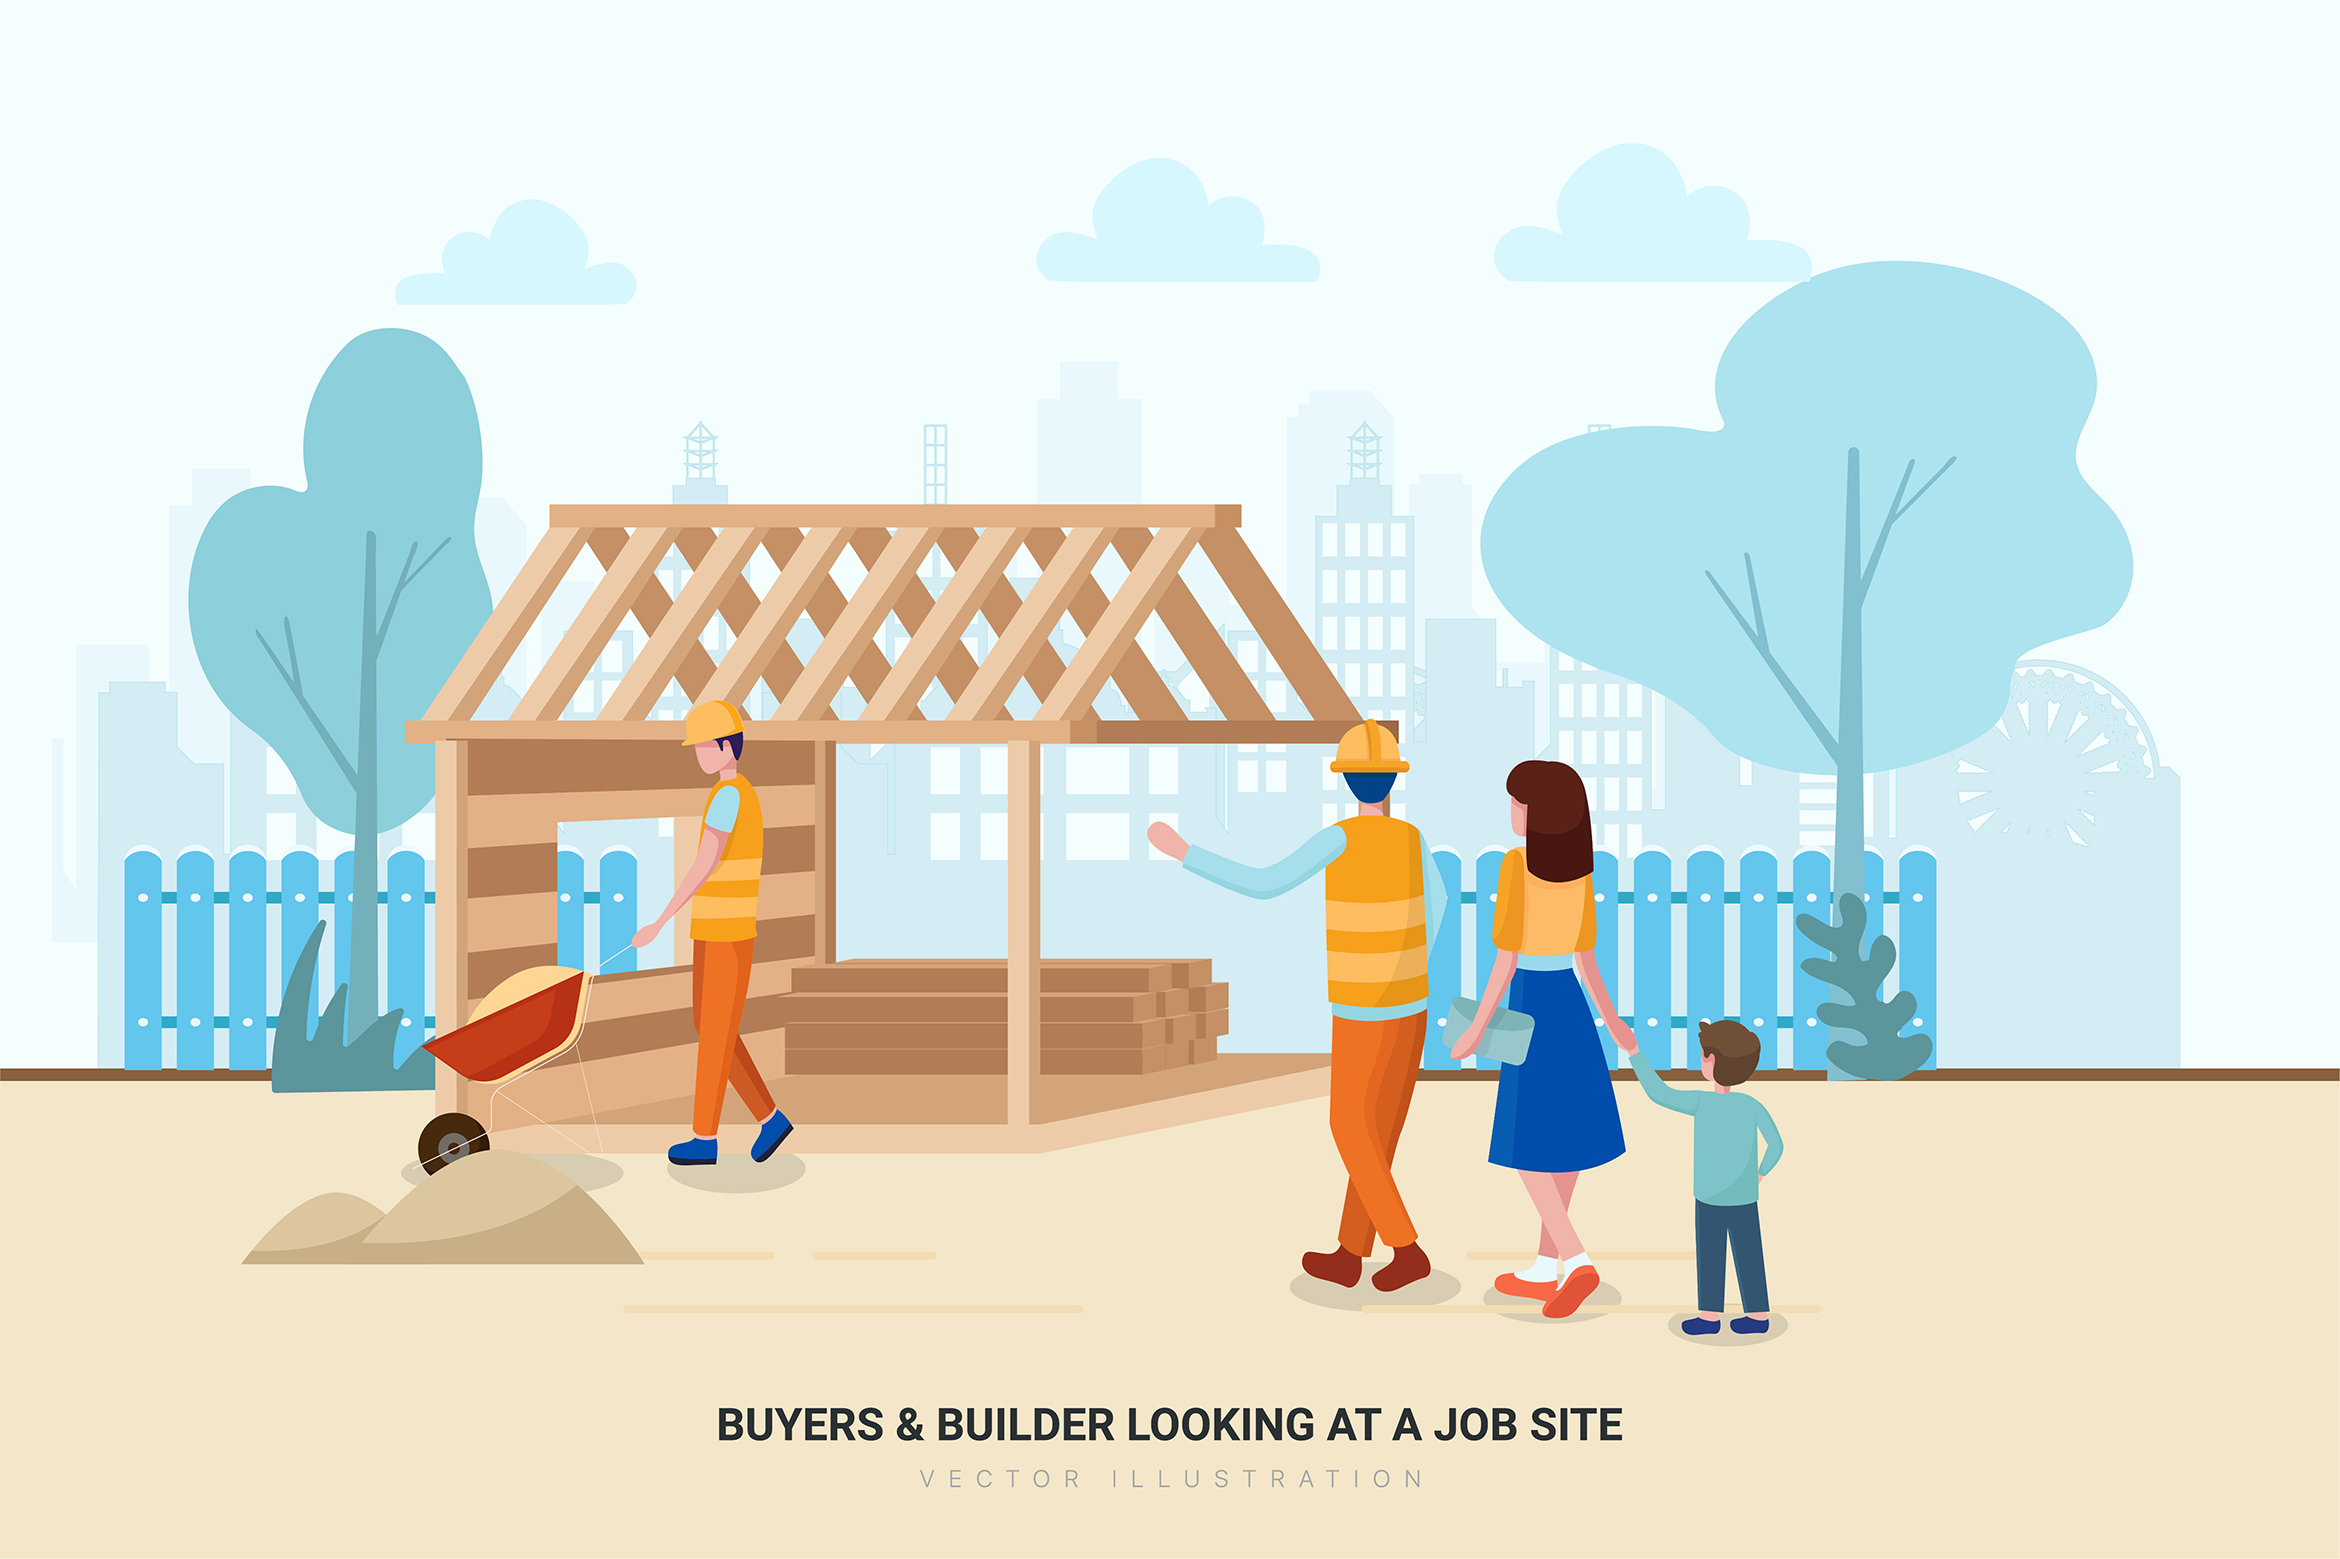 Construction & Real Estate Vector Illustration - Part 30 example image 8